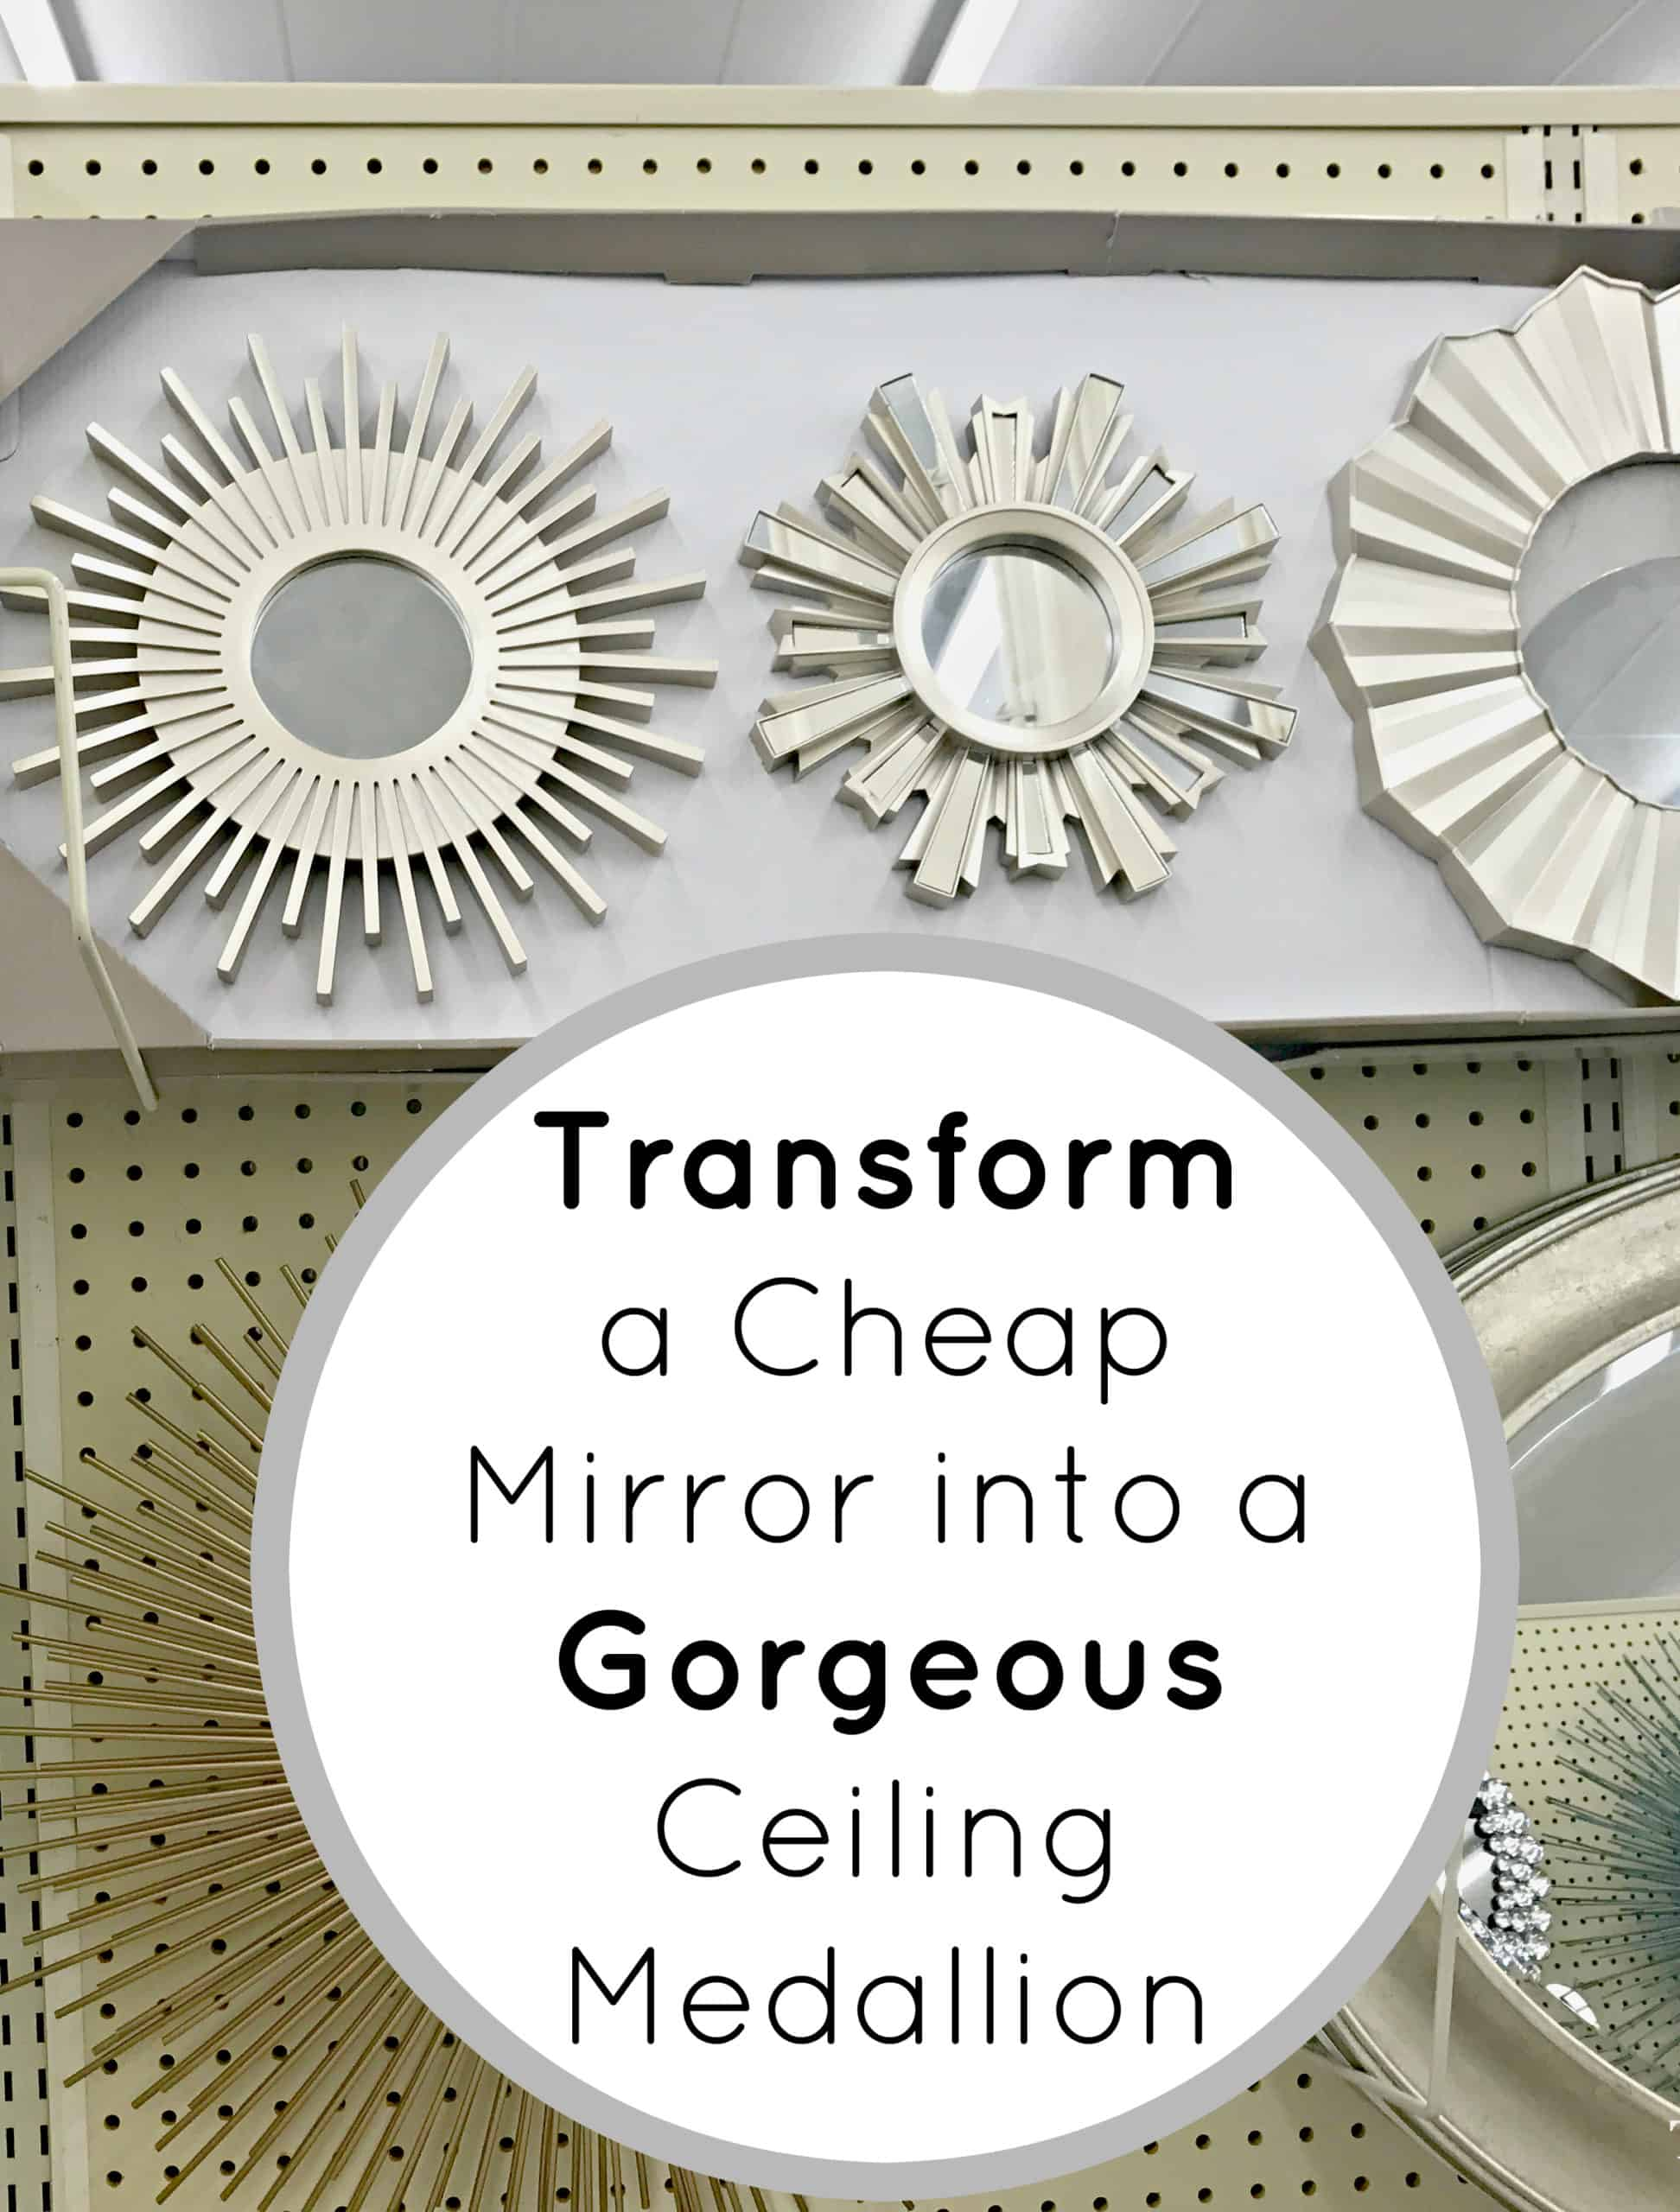 Turn A Wall Mirror Into A Gorgeous Ceiling Medallion Diy The Aspiring Home